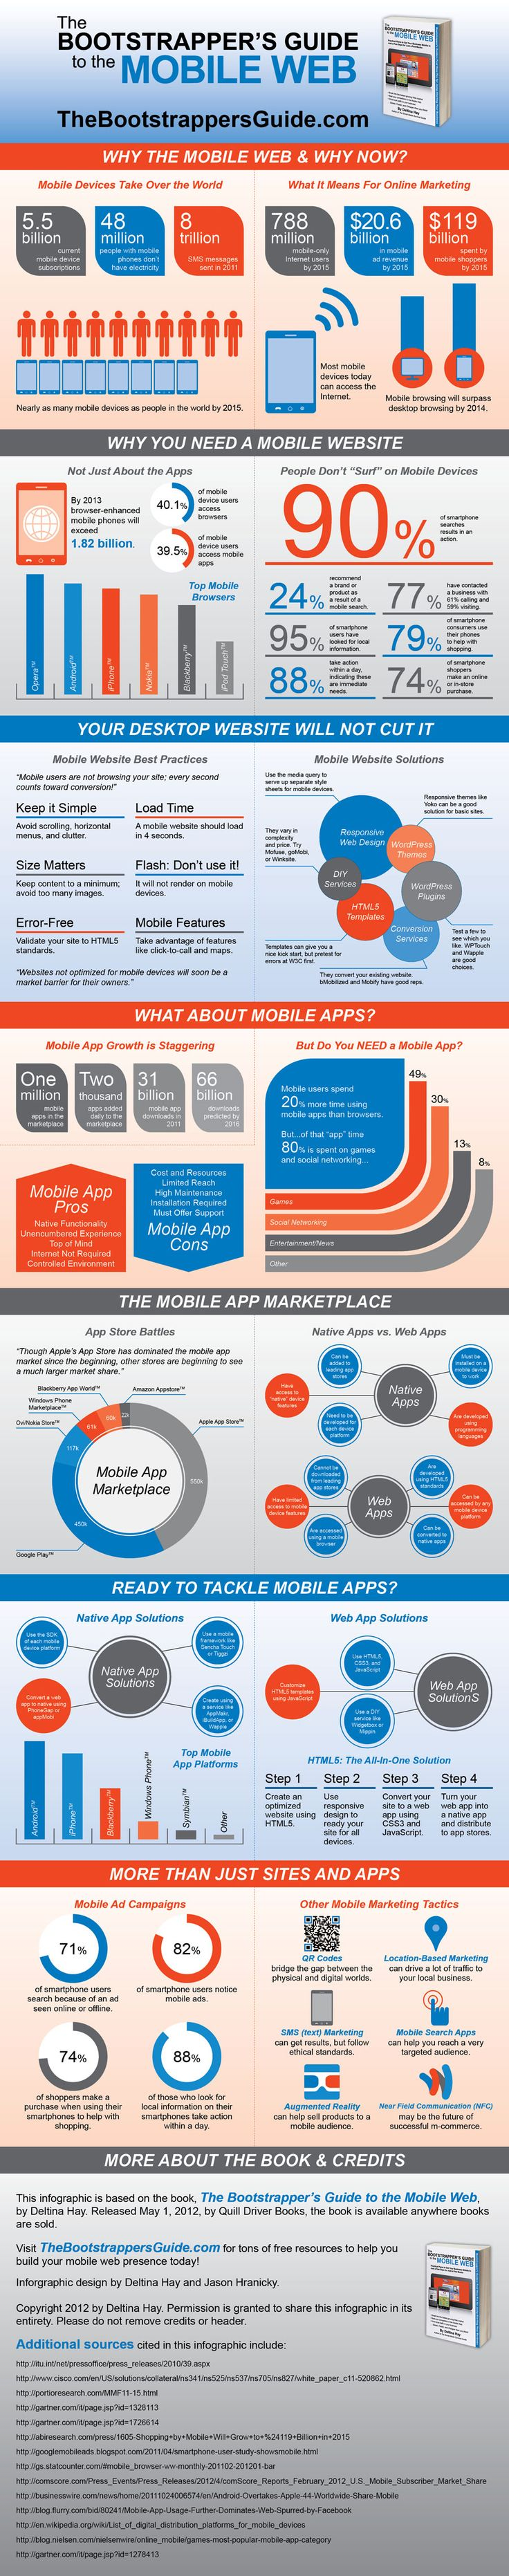 The bootstrappers guide to the mobile web